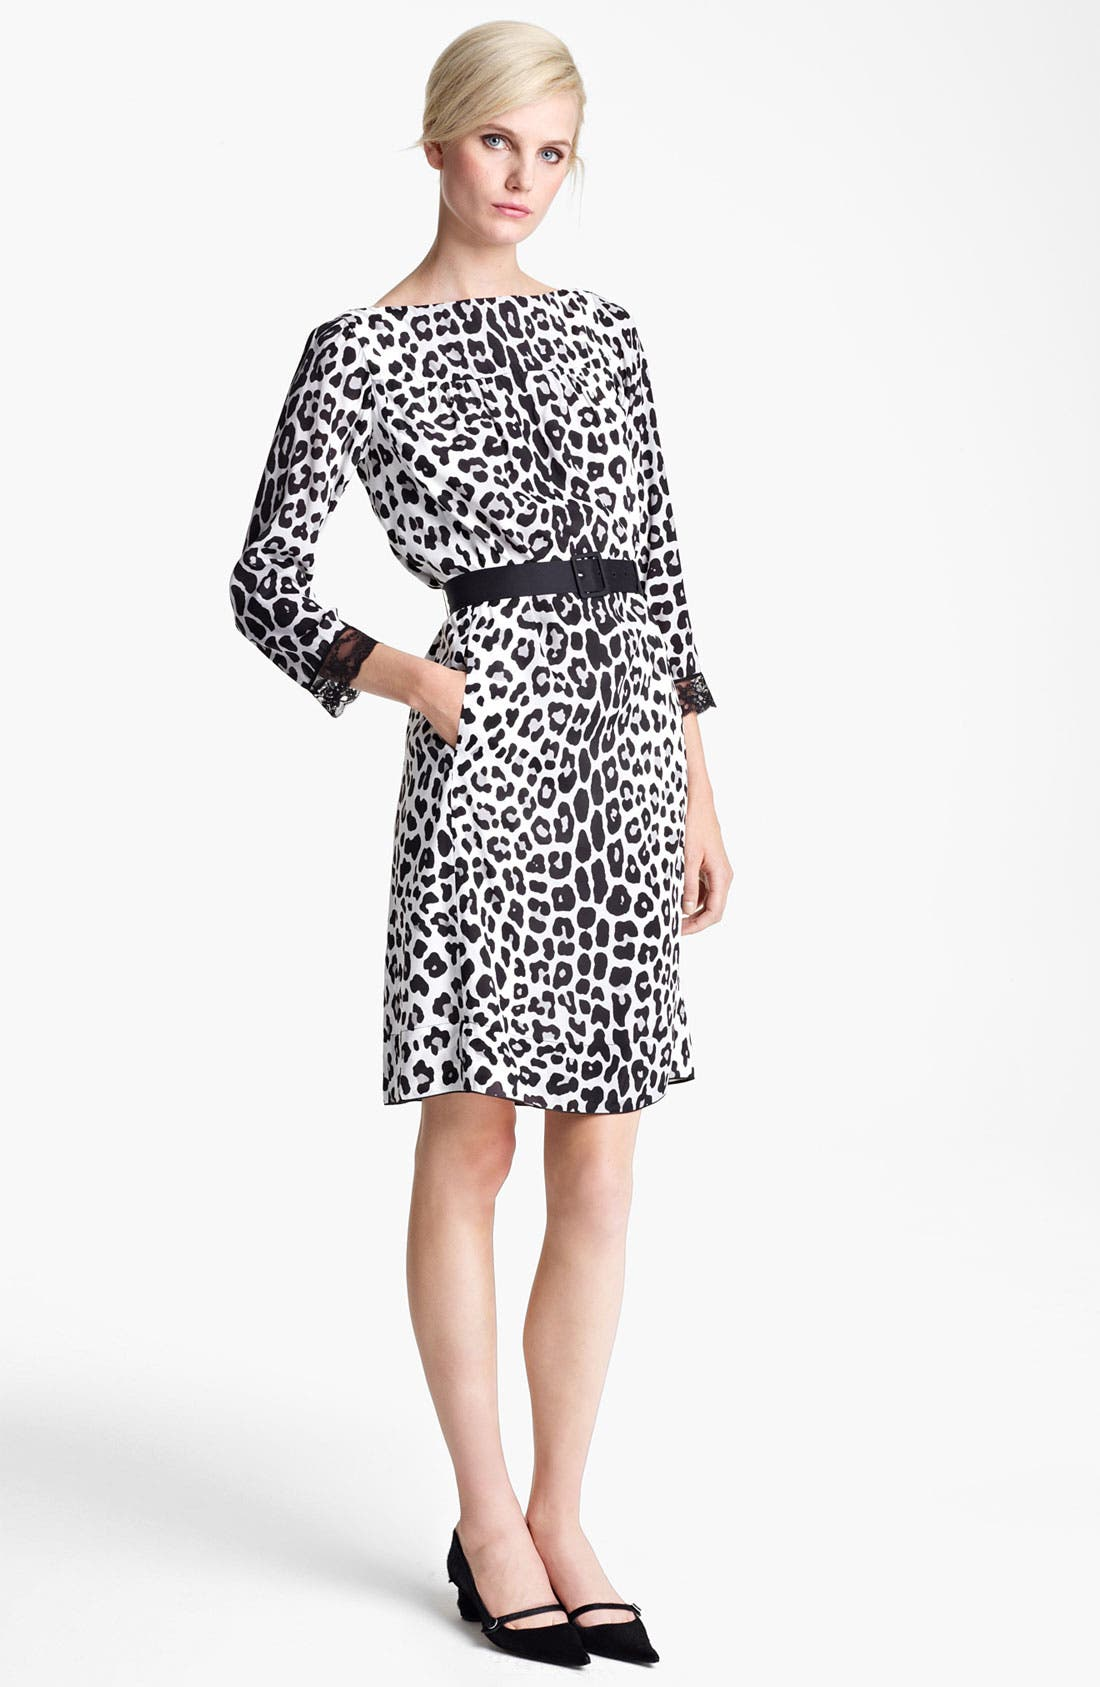 Alternate Image 1 Selected - MARC JACOBS Belted Leopard Print Techno Dress